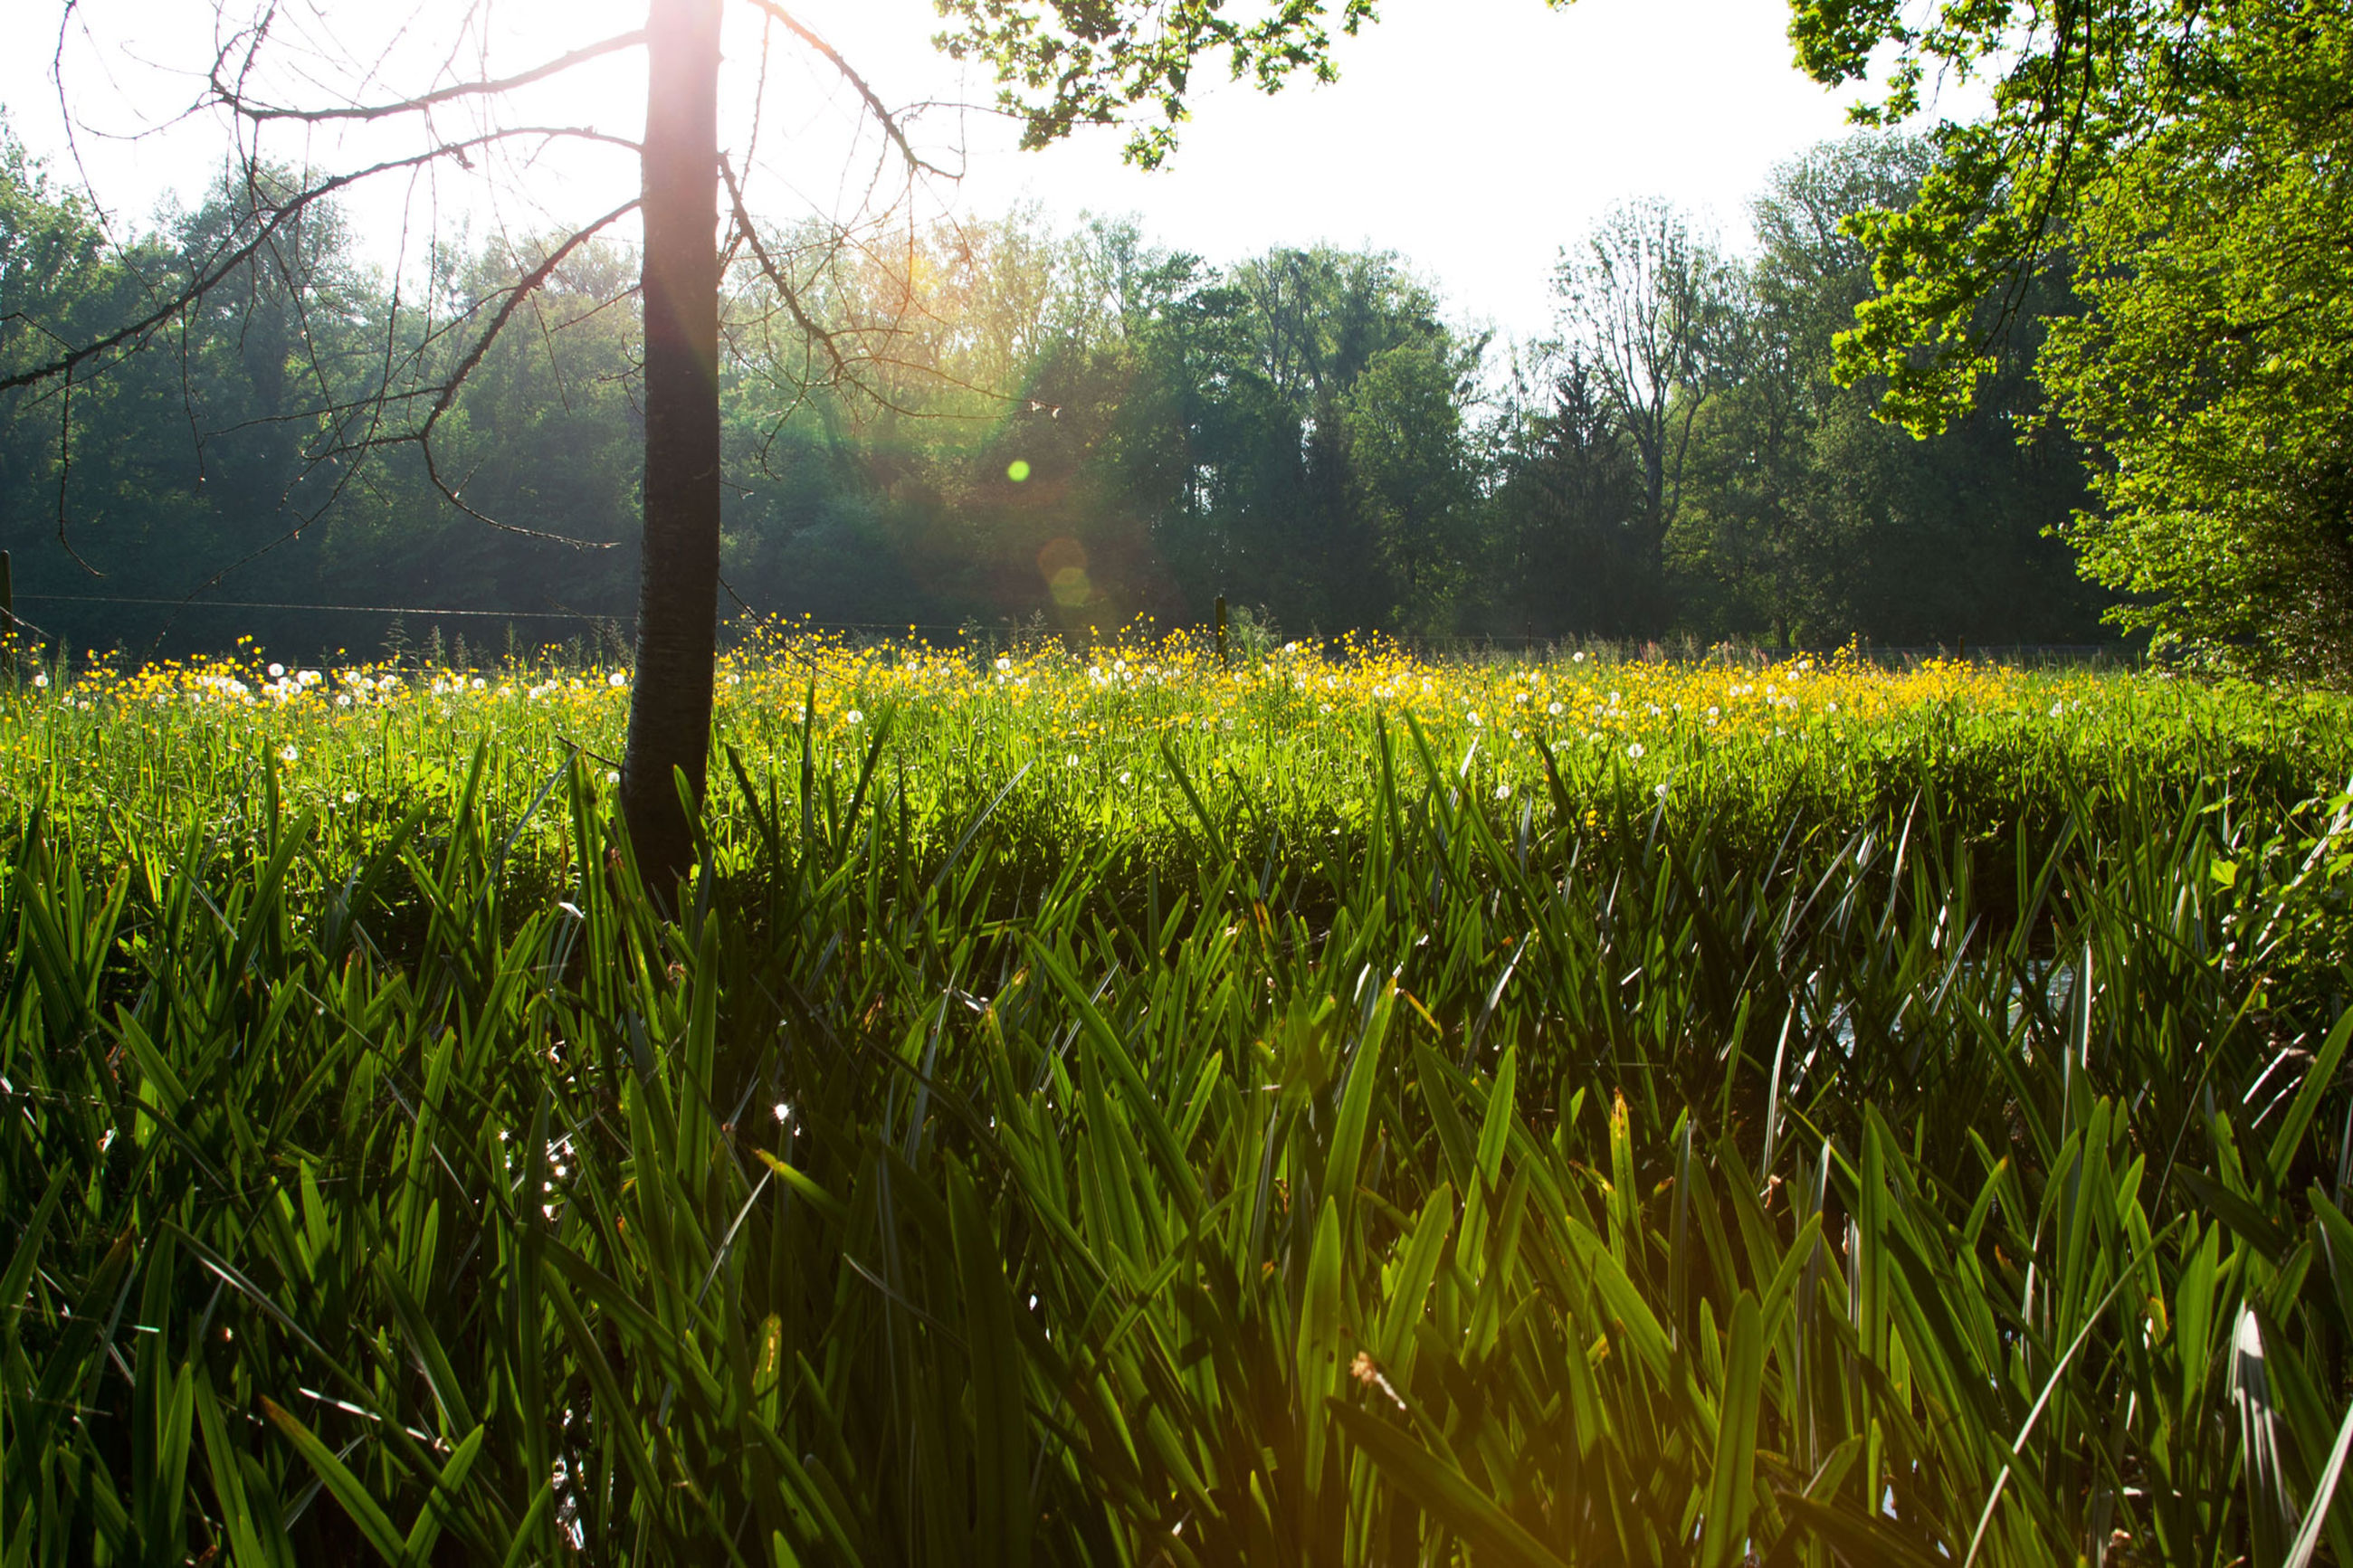 plant, growth, tree, land, field, green color, tranquility, beauty in nature, landscape, tranquil scene, nature, grass, day, environment, scenics - nature, no people, sky, rural scene, agriculture, outdoors, blade of grass